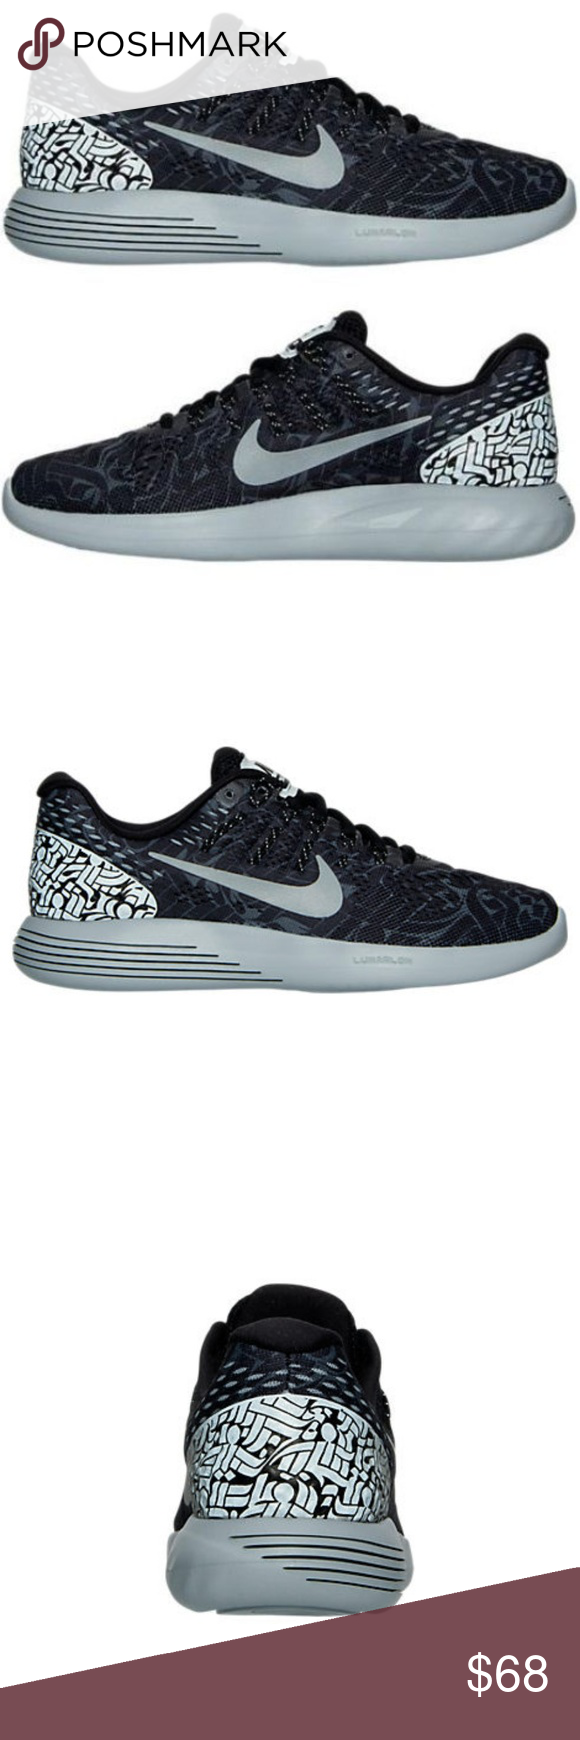 5ea68e9451a3 ... best price nike x rostarr lunarglide 8 running shoes gently used.  features killer collab like